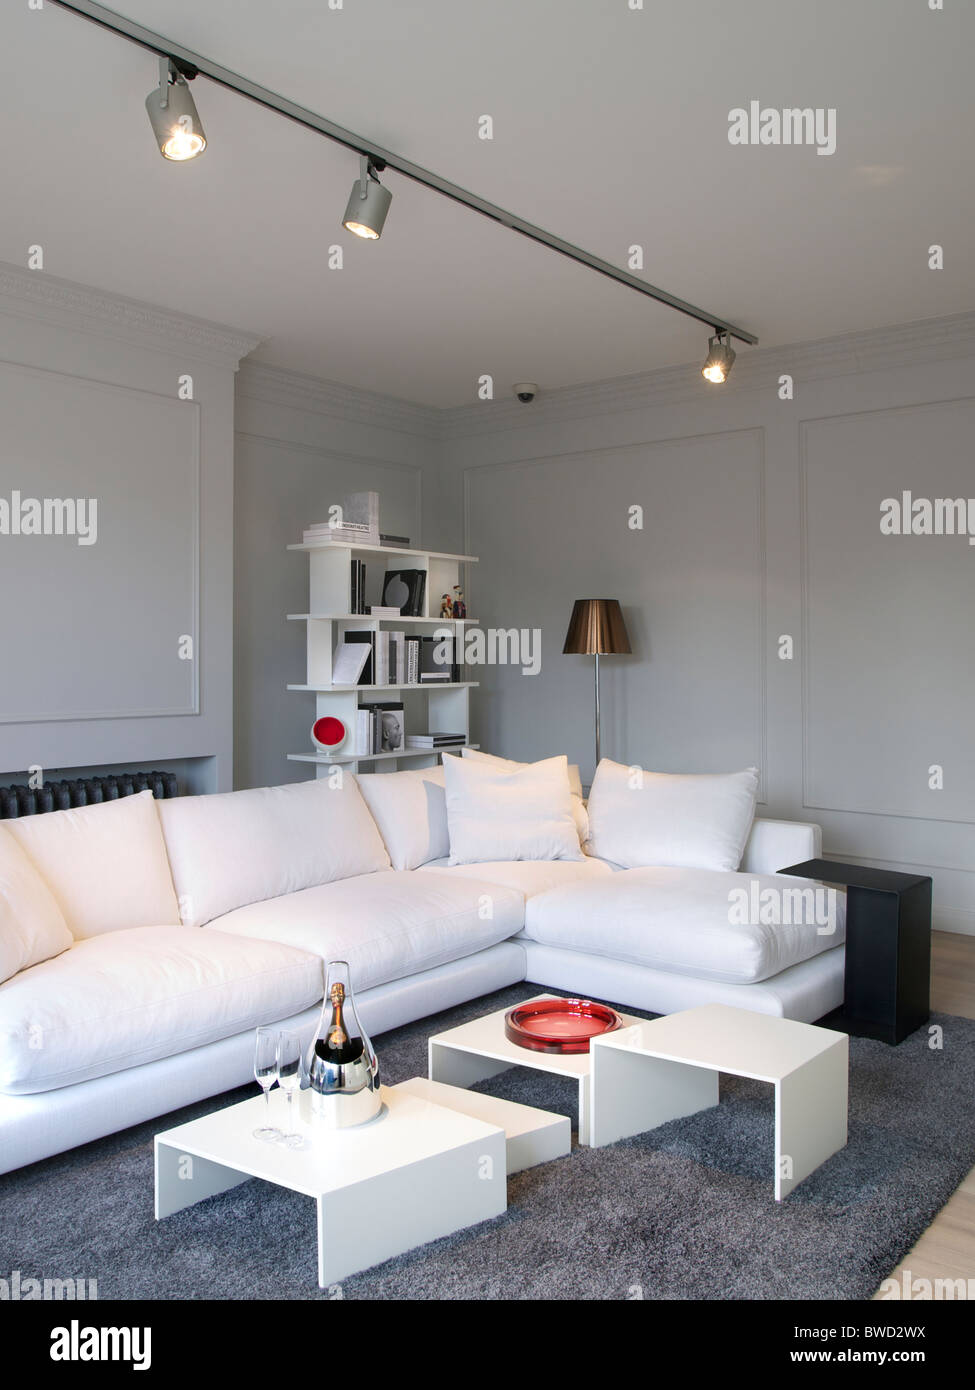 Luxurious livingroom combining old style room with modern design furniture mol belgium stock